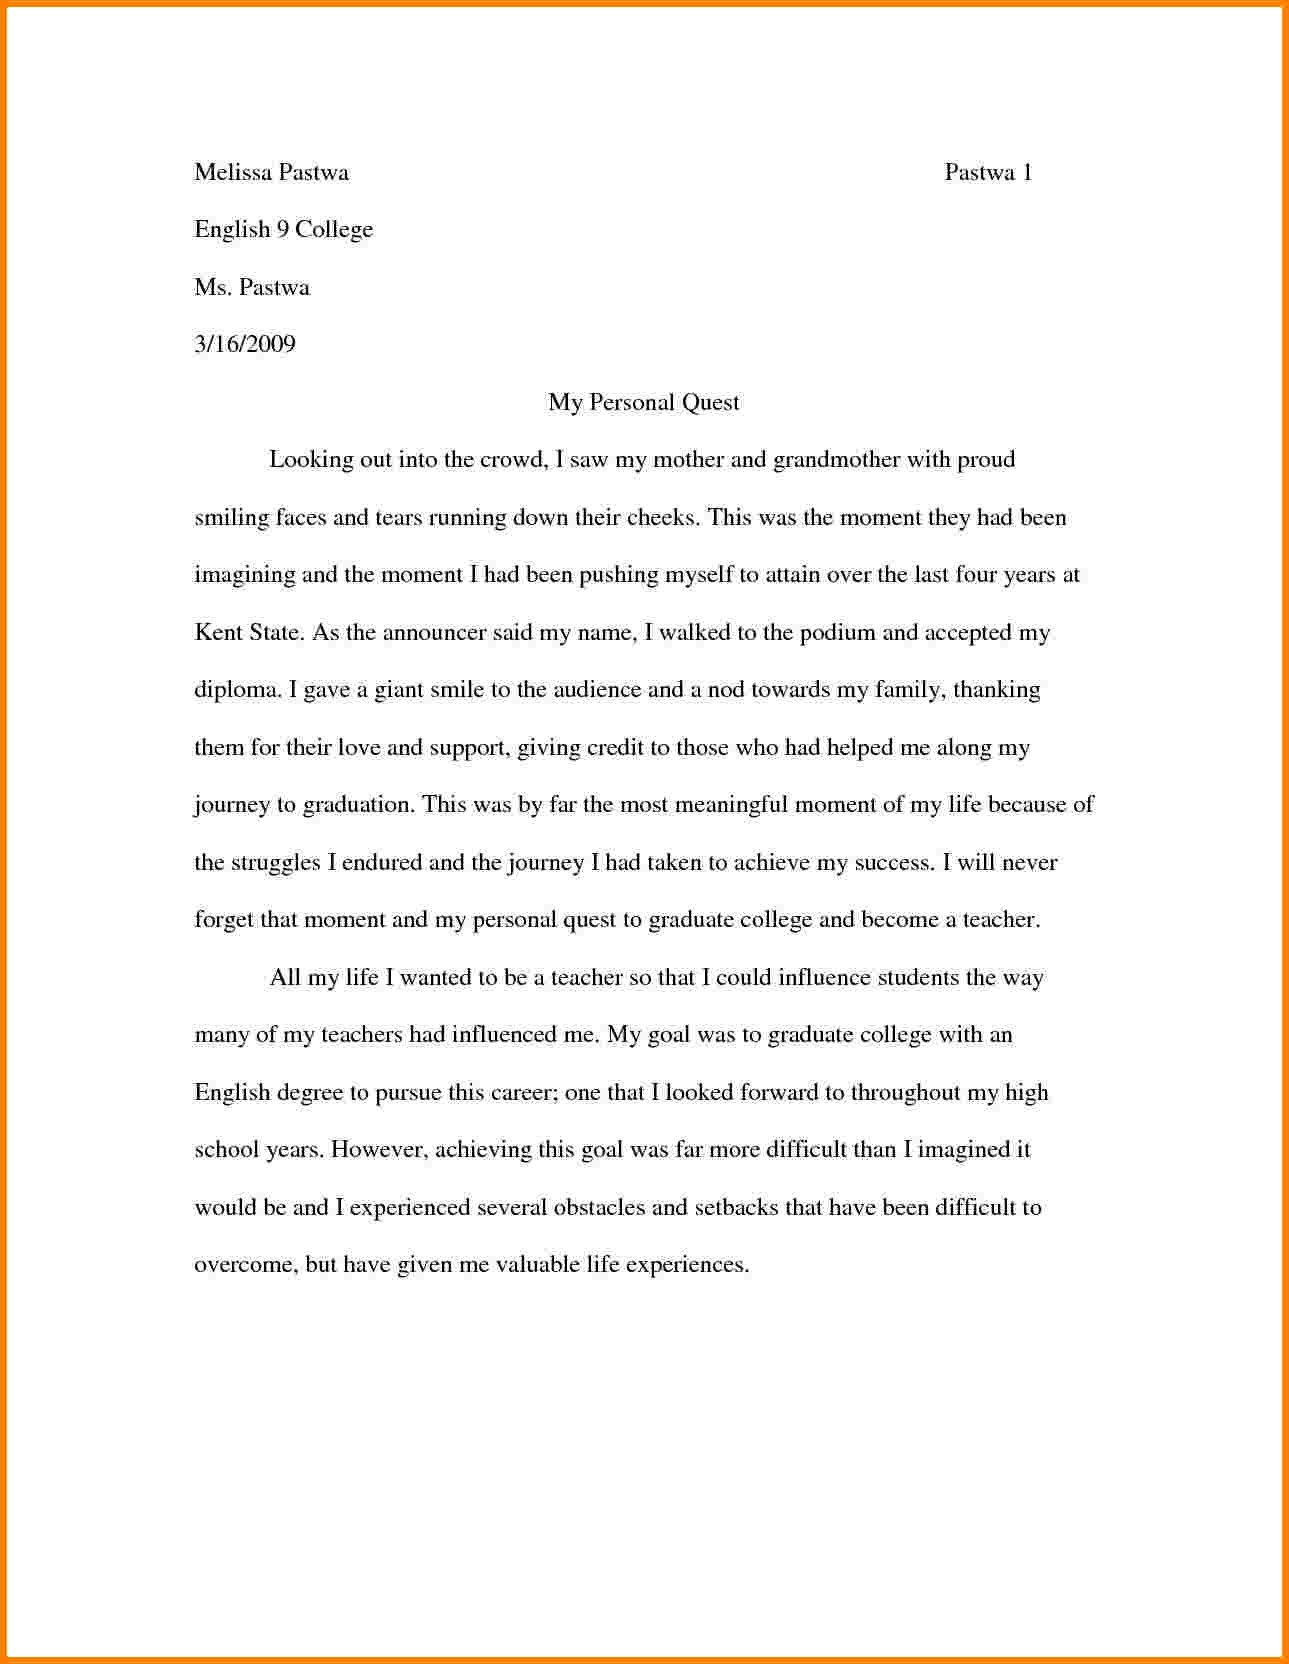 Sample memoir essay